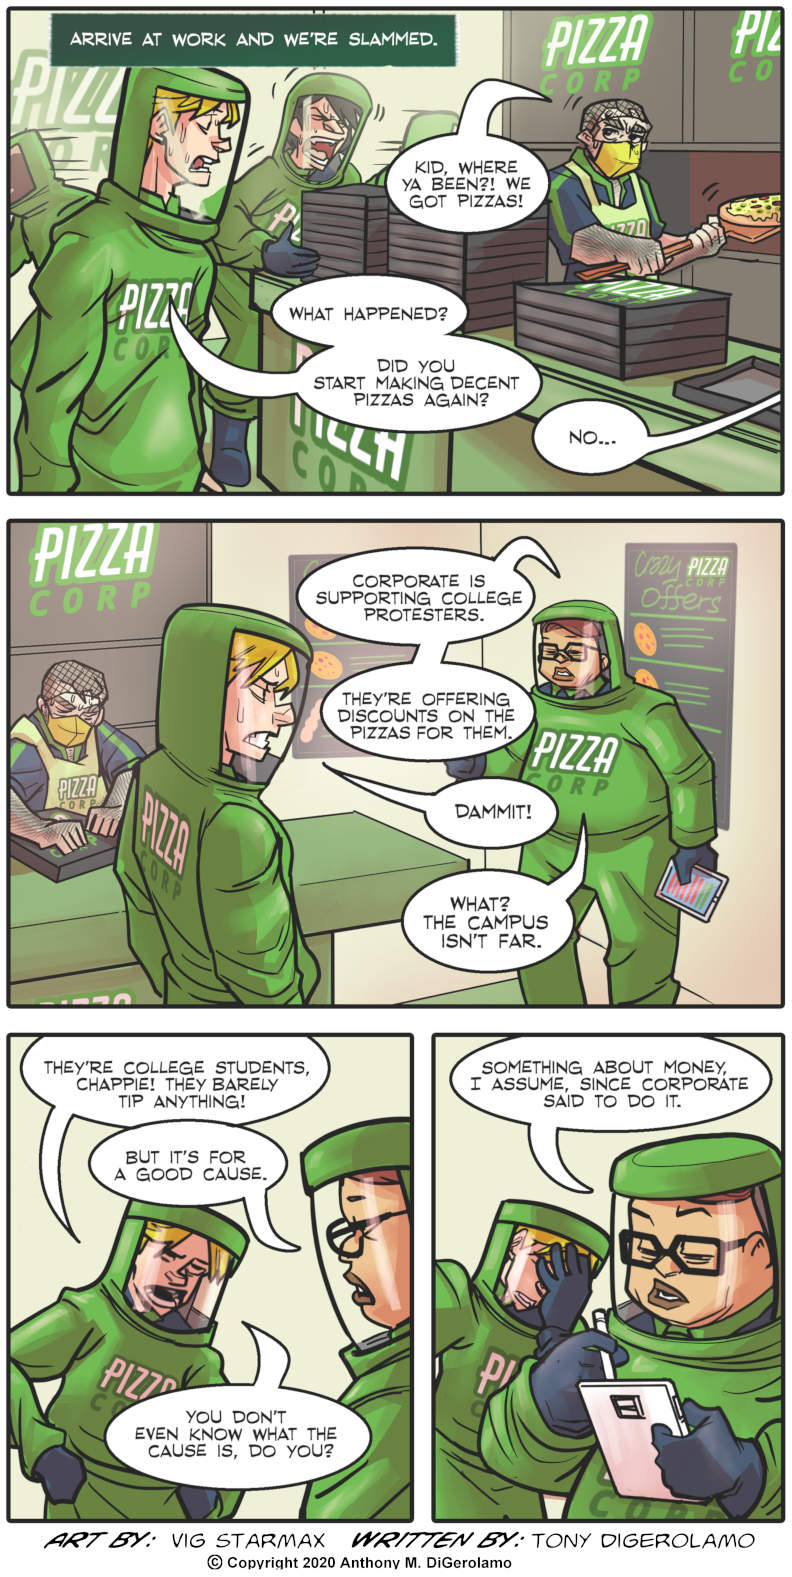 Tales of Pizza:  Orders at the College